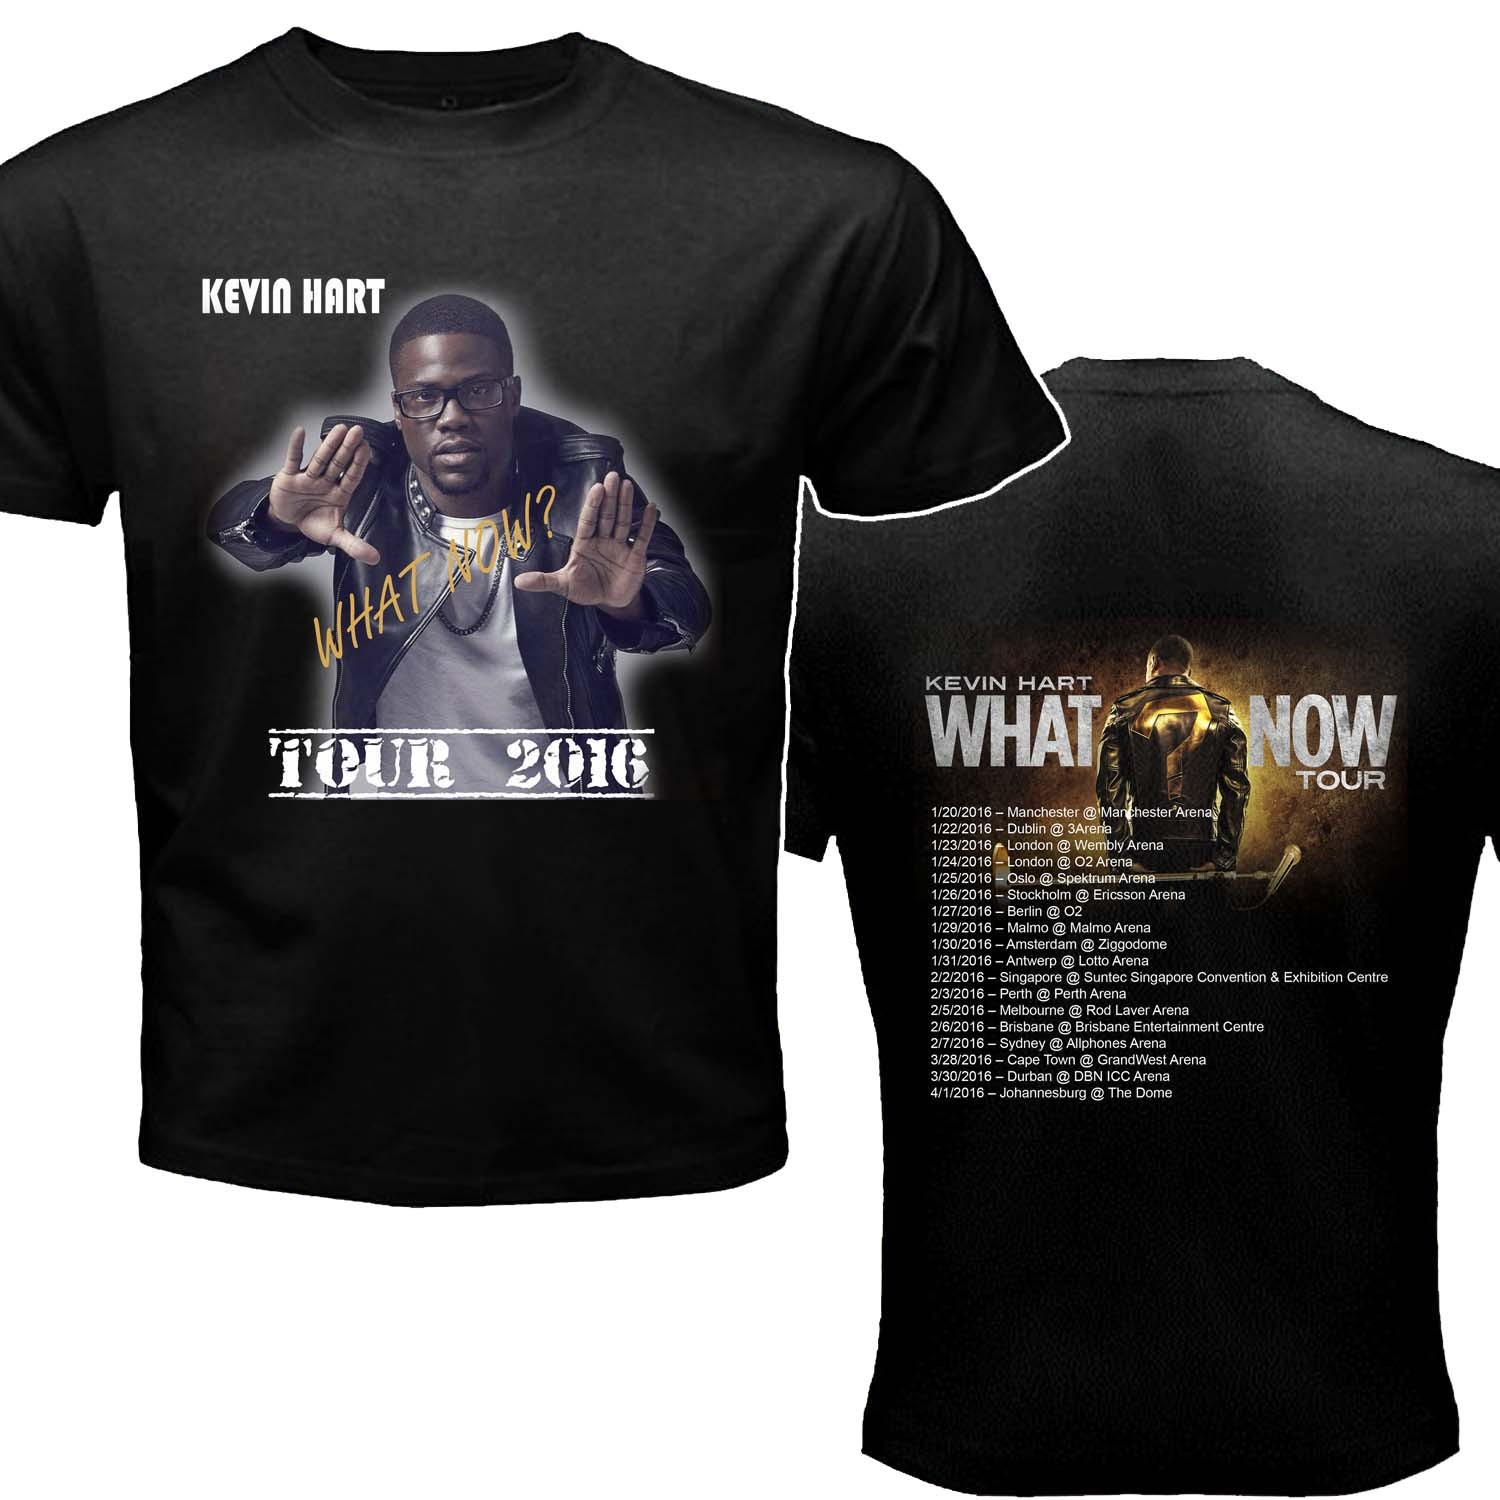 Kevin hart what now tour dates in Sydney